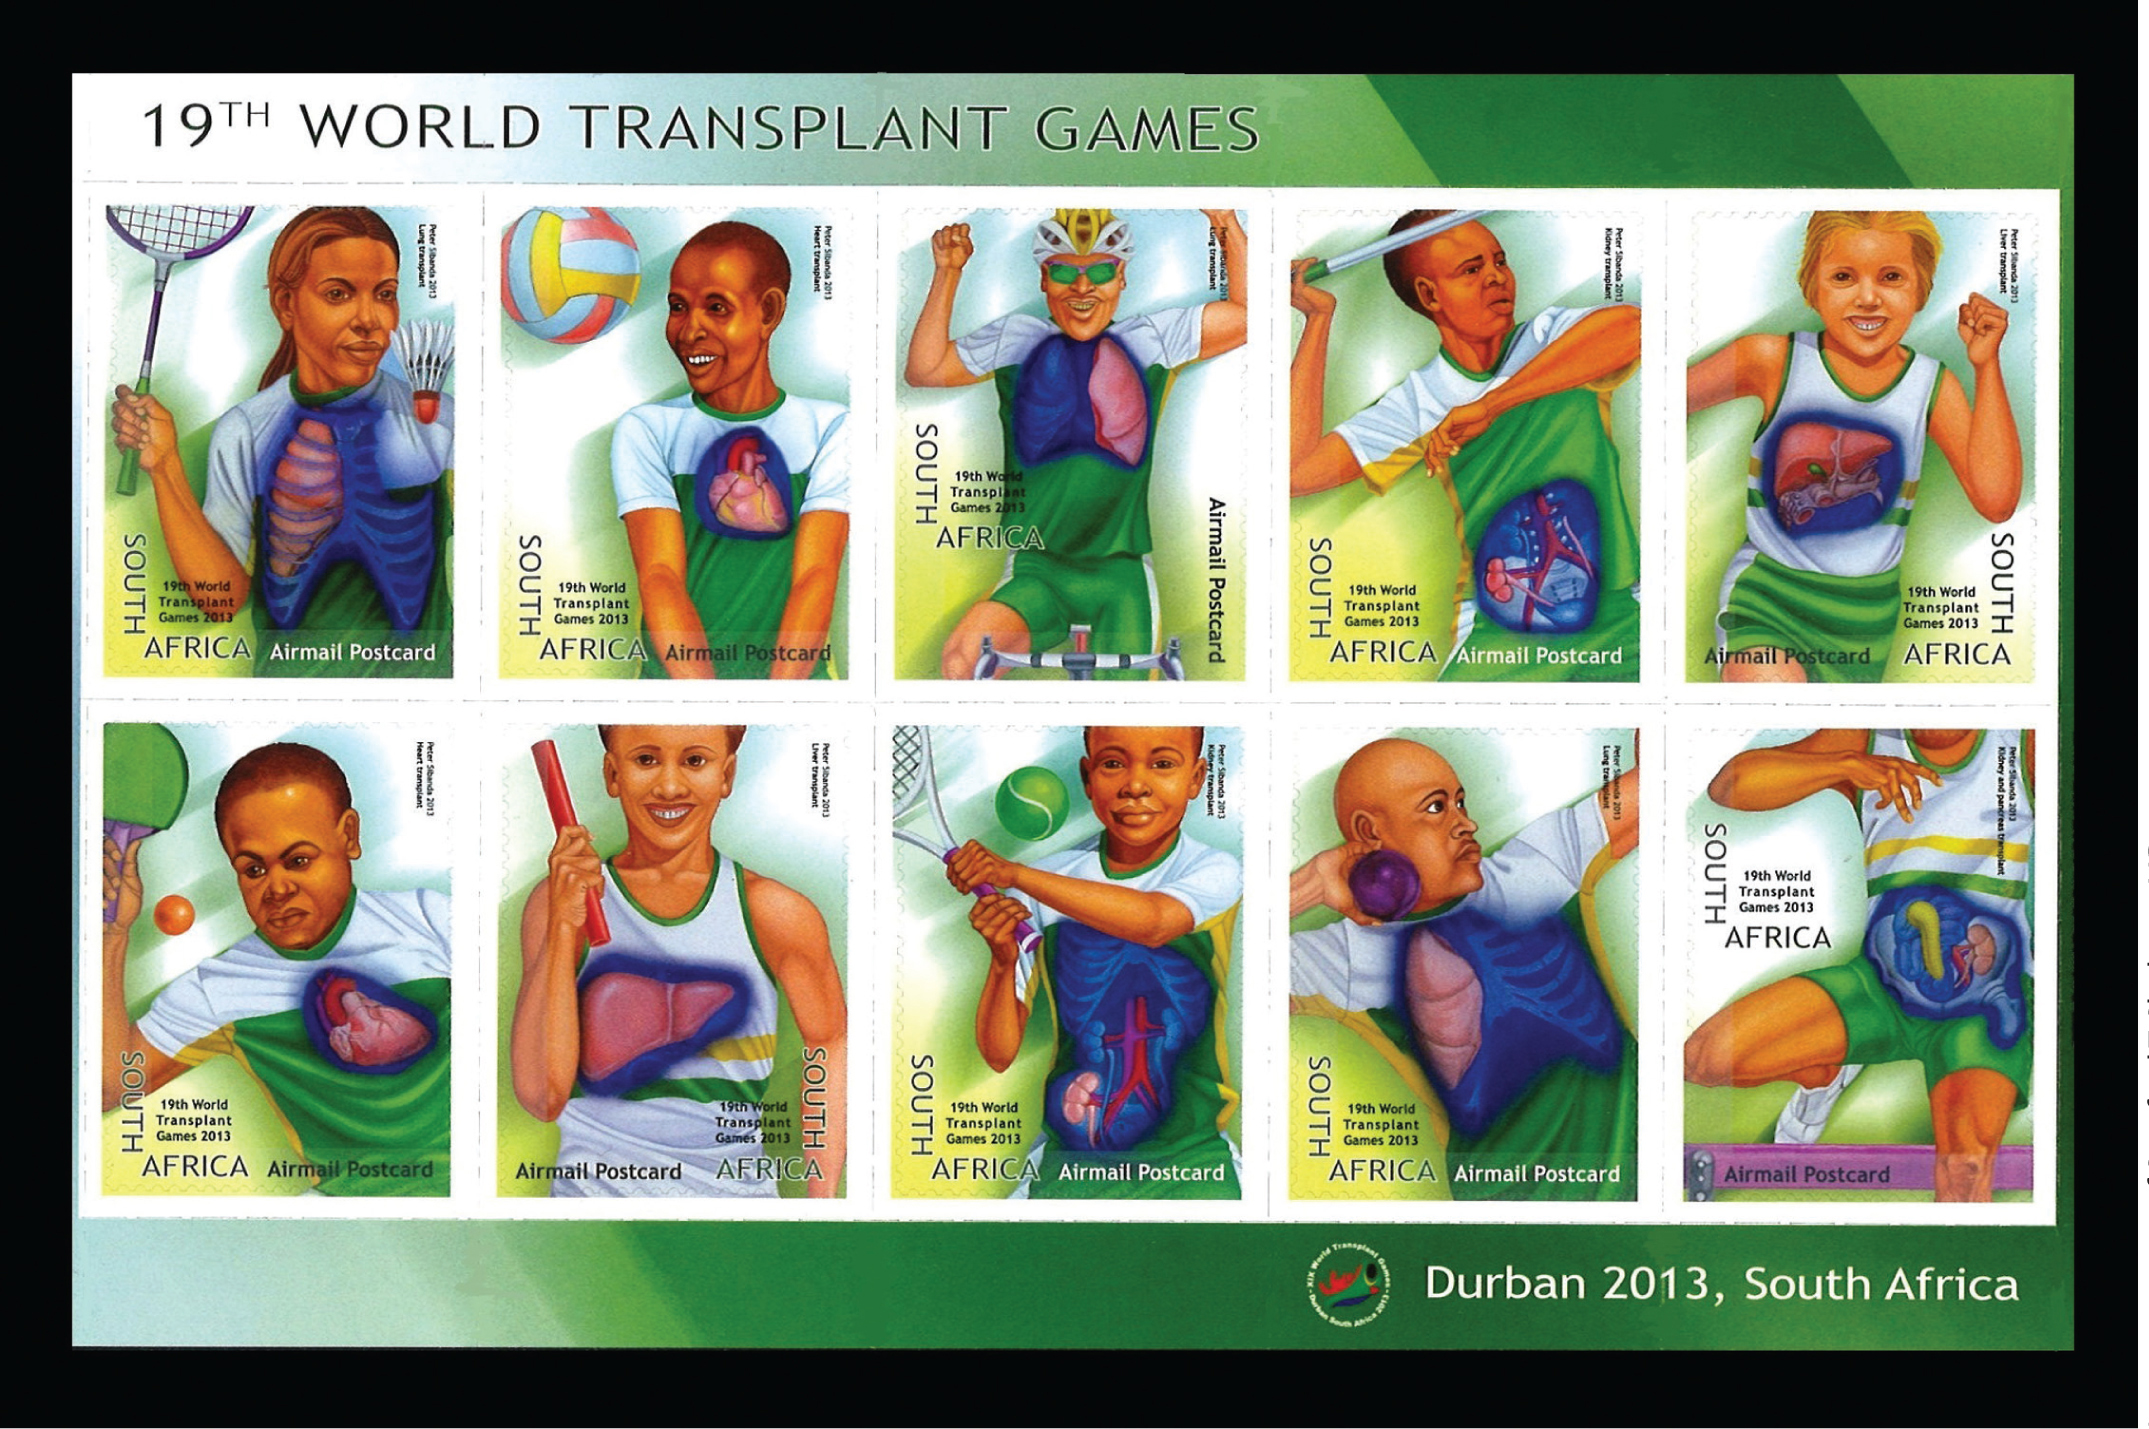 Set of stamps issued by South Africa to celebrate the 19th World Transplant Games, held from July 28 to Aug. 4, 2013, in Durban, South Africa.Image courtesy of Stanford T. Shulman, MD.